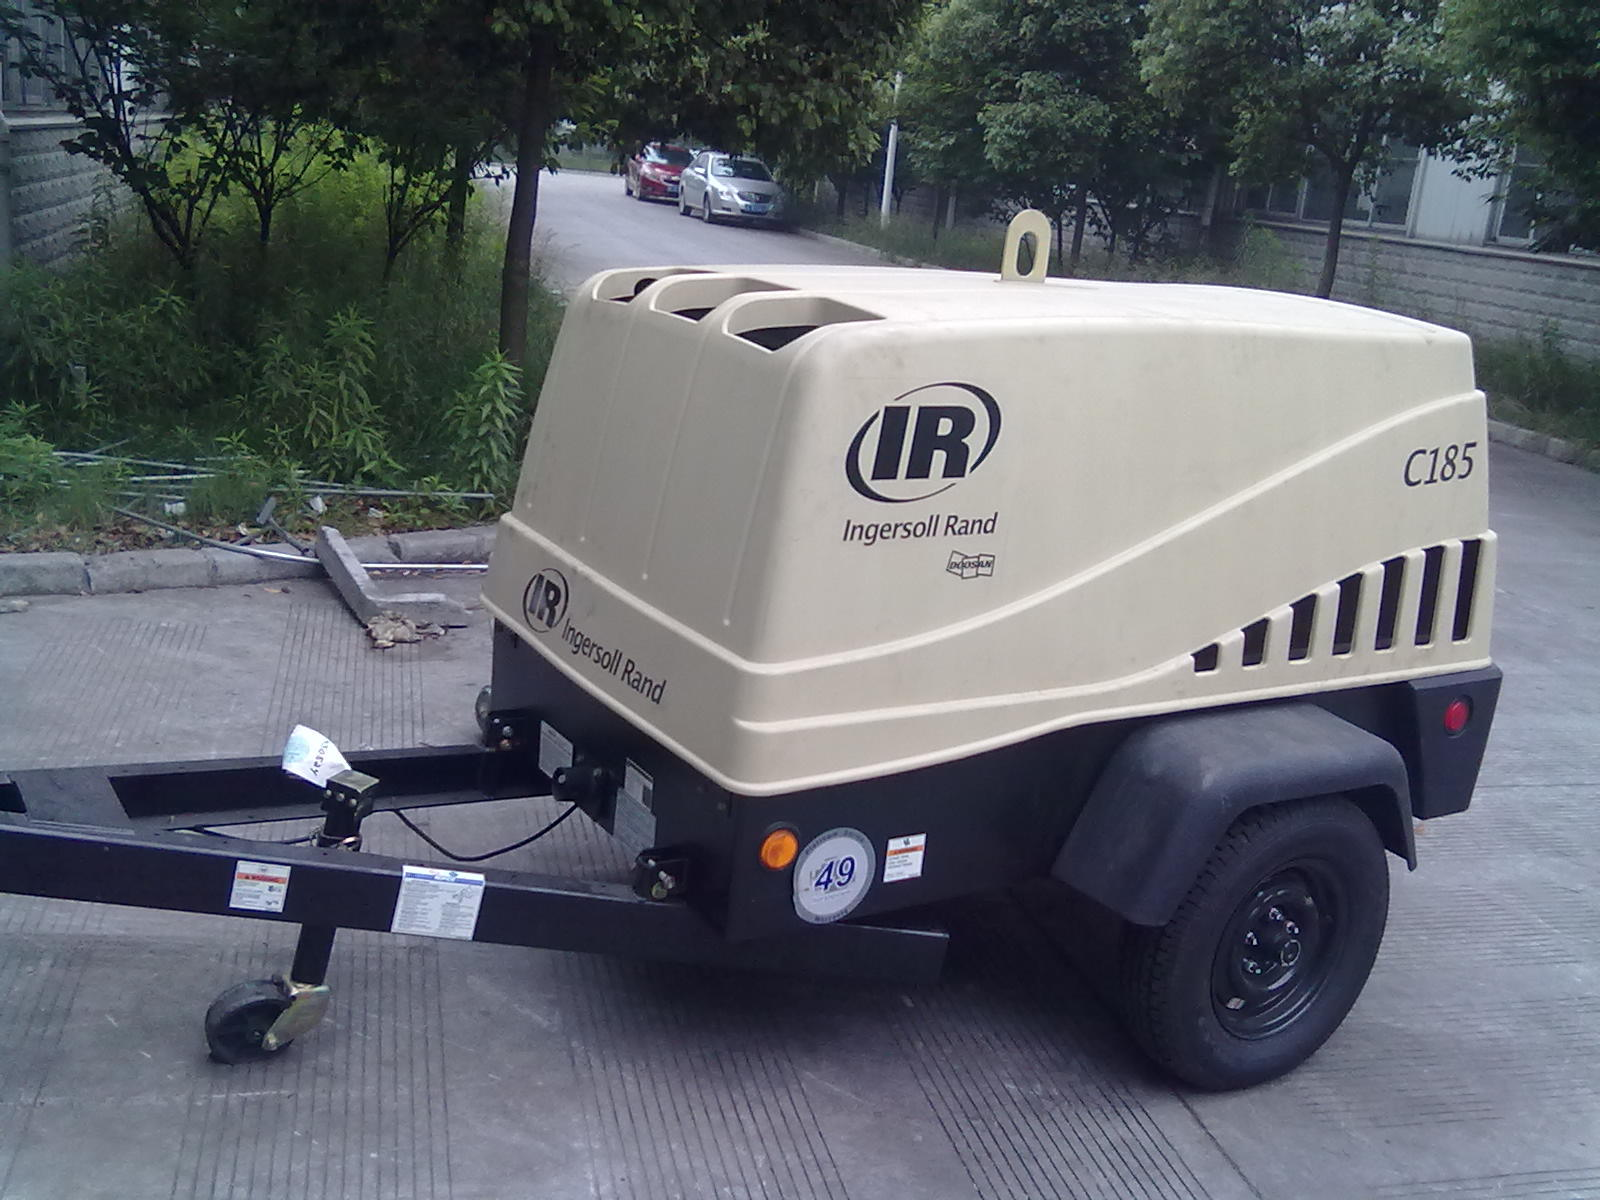 Ingersoll Rand /Doosan Diesel Drive Portable Screw Air Compressor, Portable Air Compressor (C185)